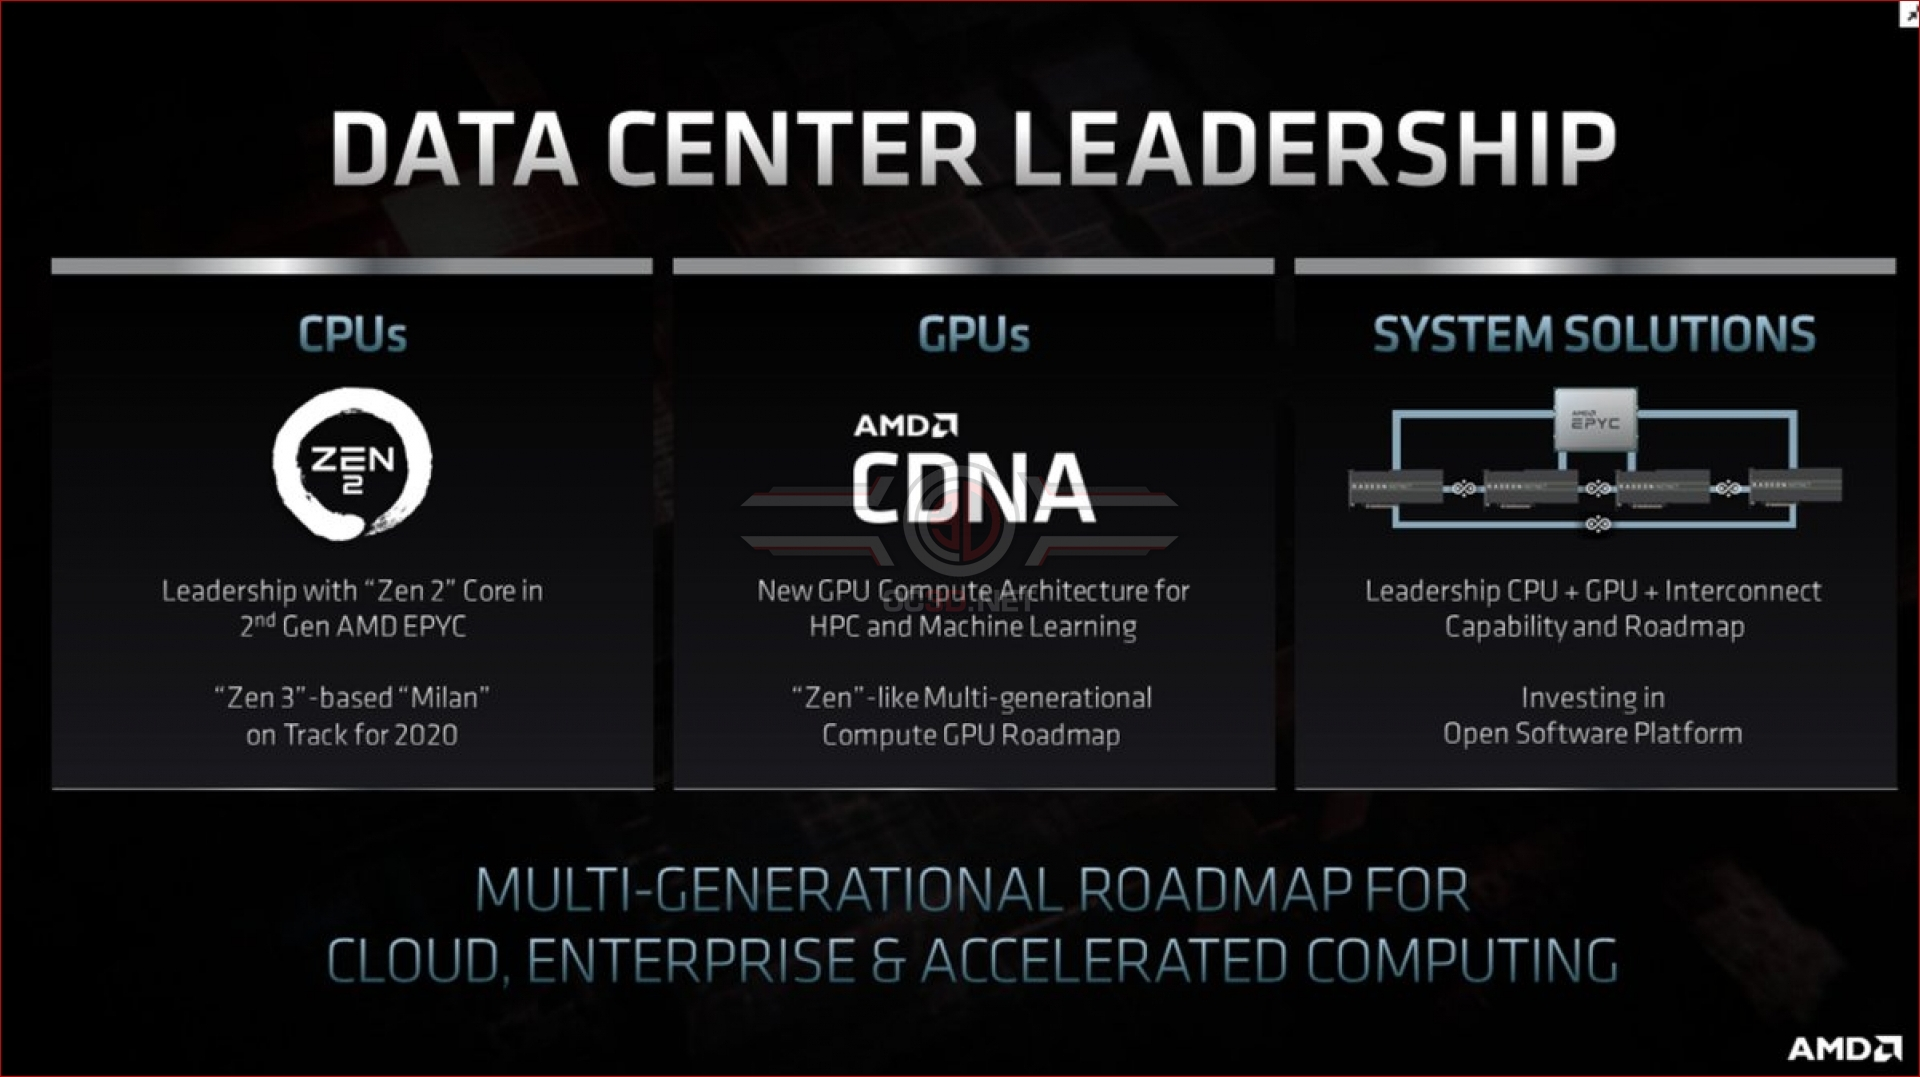 Amd Reveals Cdna A Compute Focused Gpu Architecture That S Separate From Rdna Oc3d News